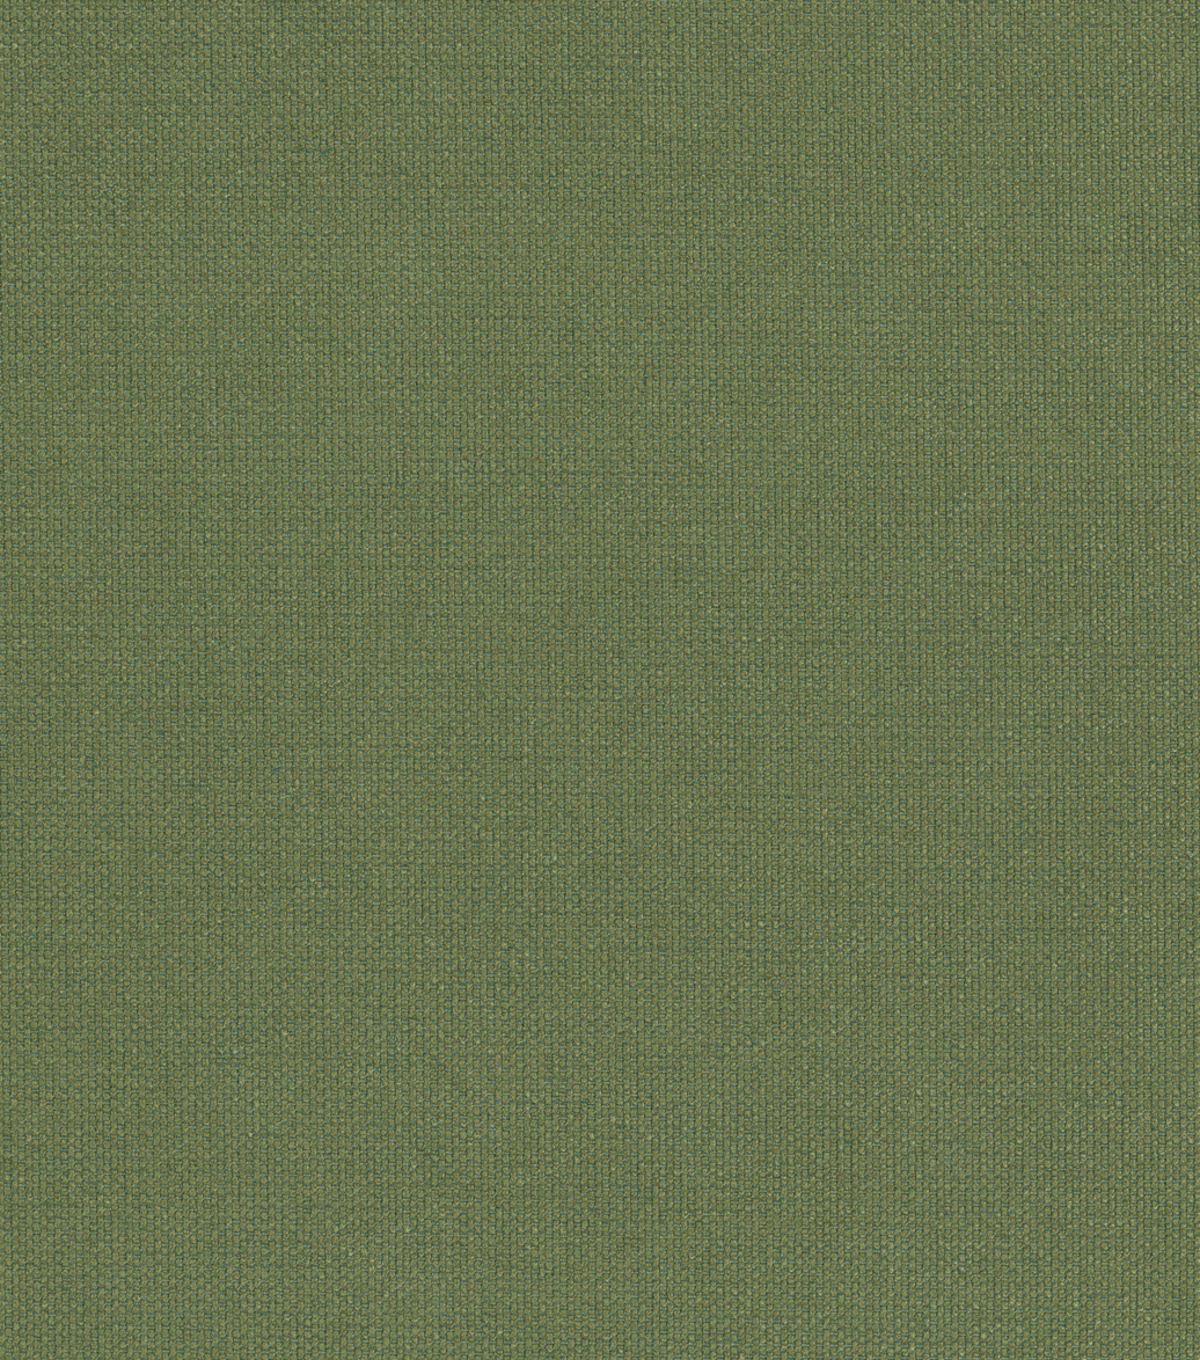 Home Decor 8\u0022x8\u0022 Fabric Swatch-Motown-Pinyon